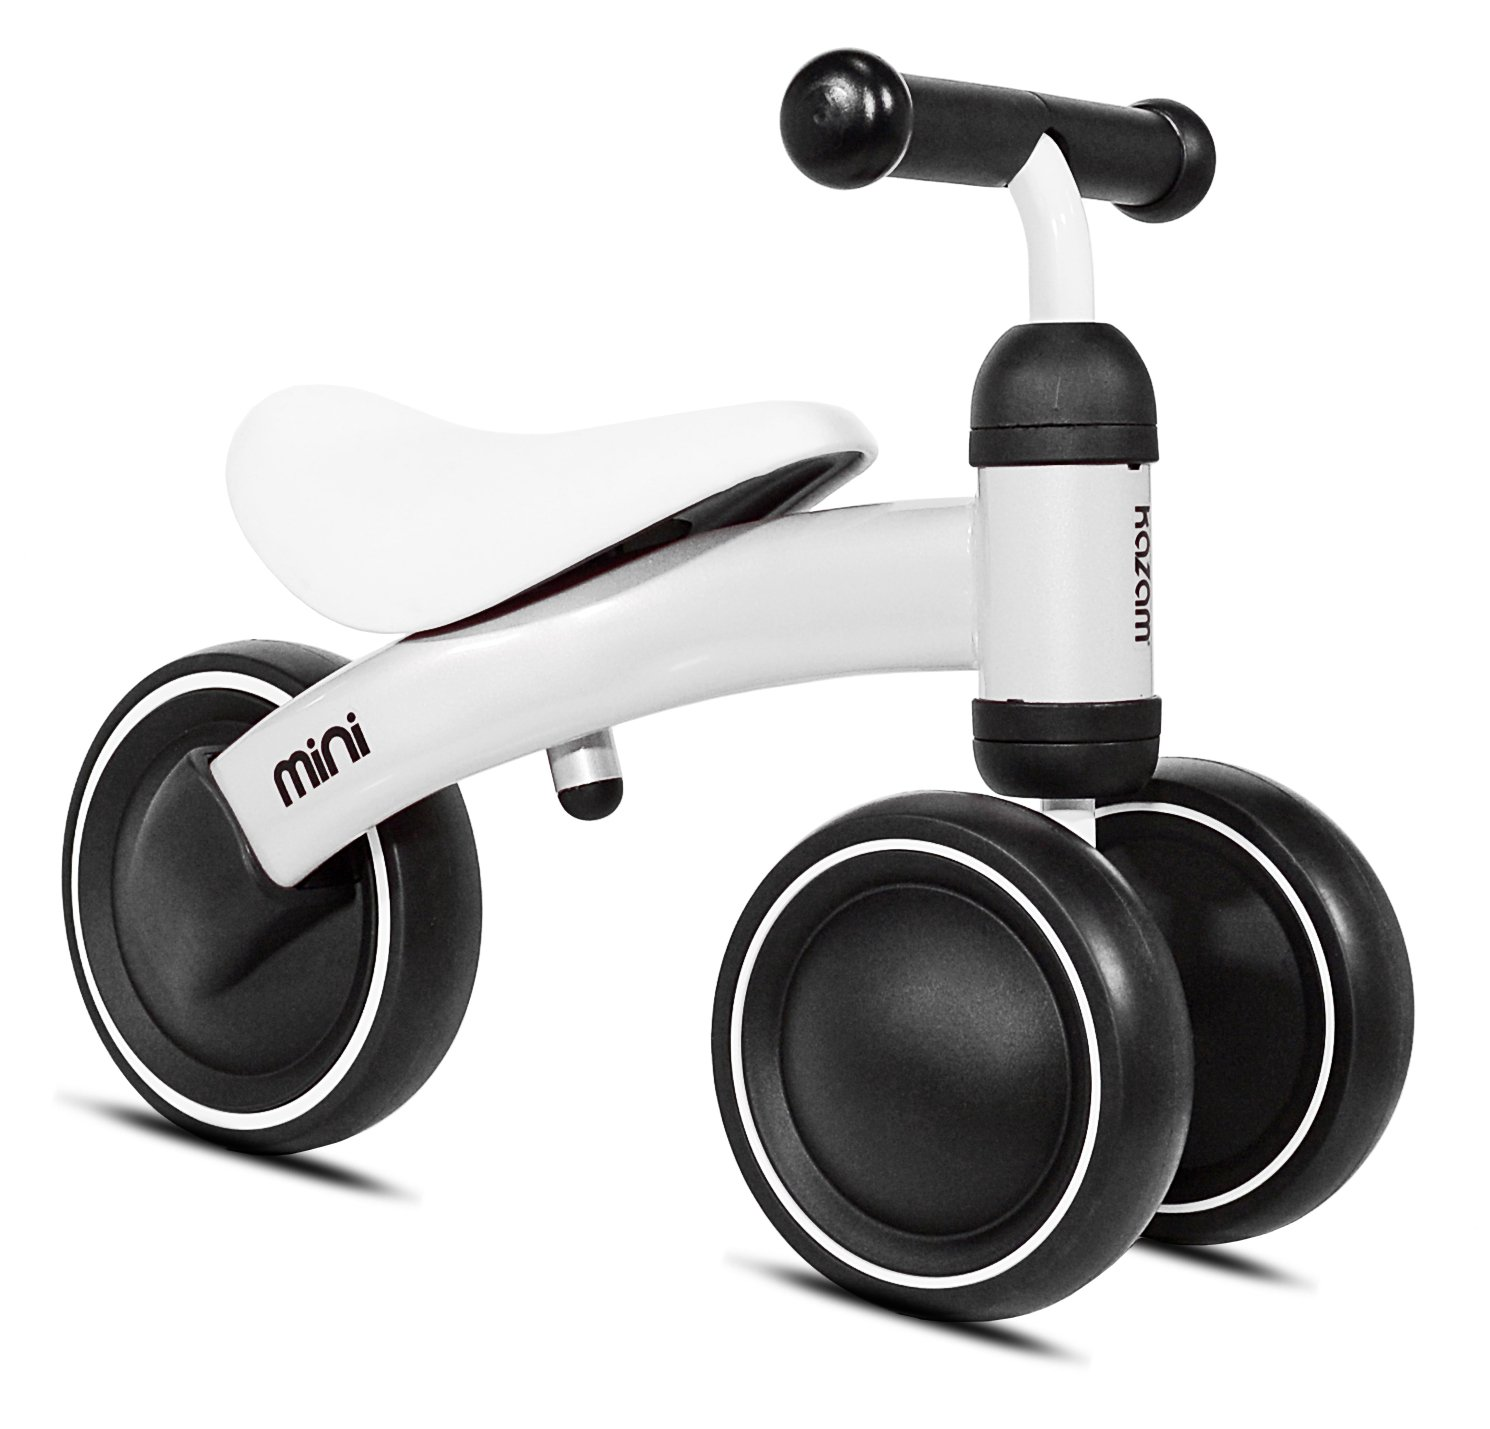 KaZAM Mini Trike—The Perfect Trike For Toddlers, Safe and Comfortable, Lightweight and Durable, For Ages 12+ Months. A Great Way To Develop Motor Skills And Have Fun! White